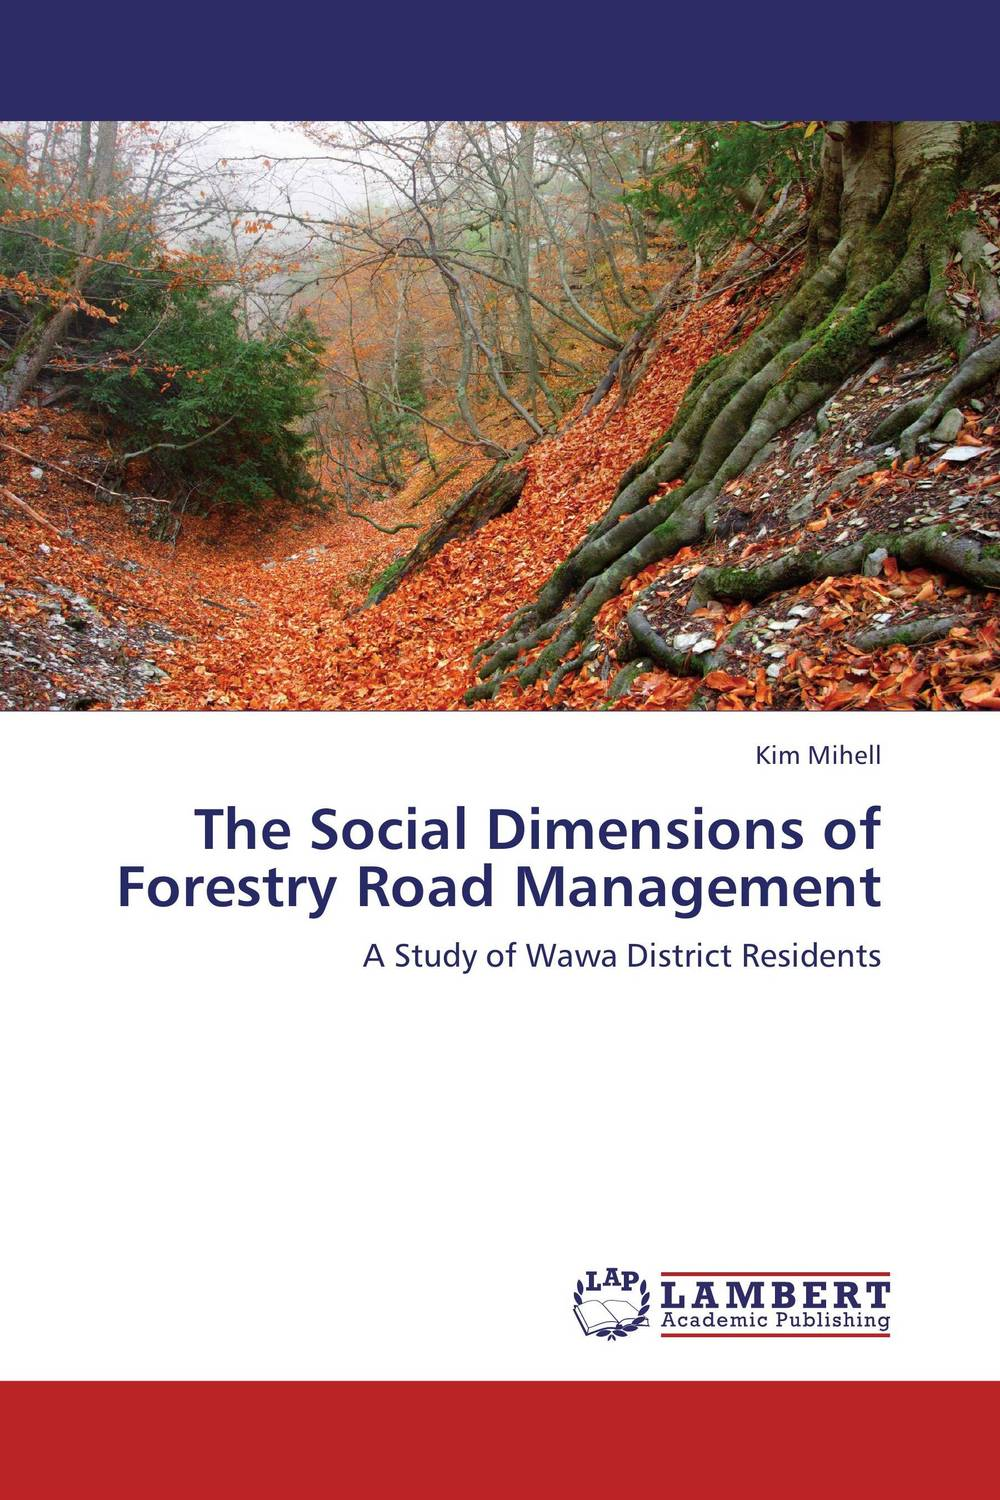 The Social Dimensions of Forestry Road Management gates bill pr3 road ahead the